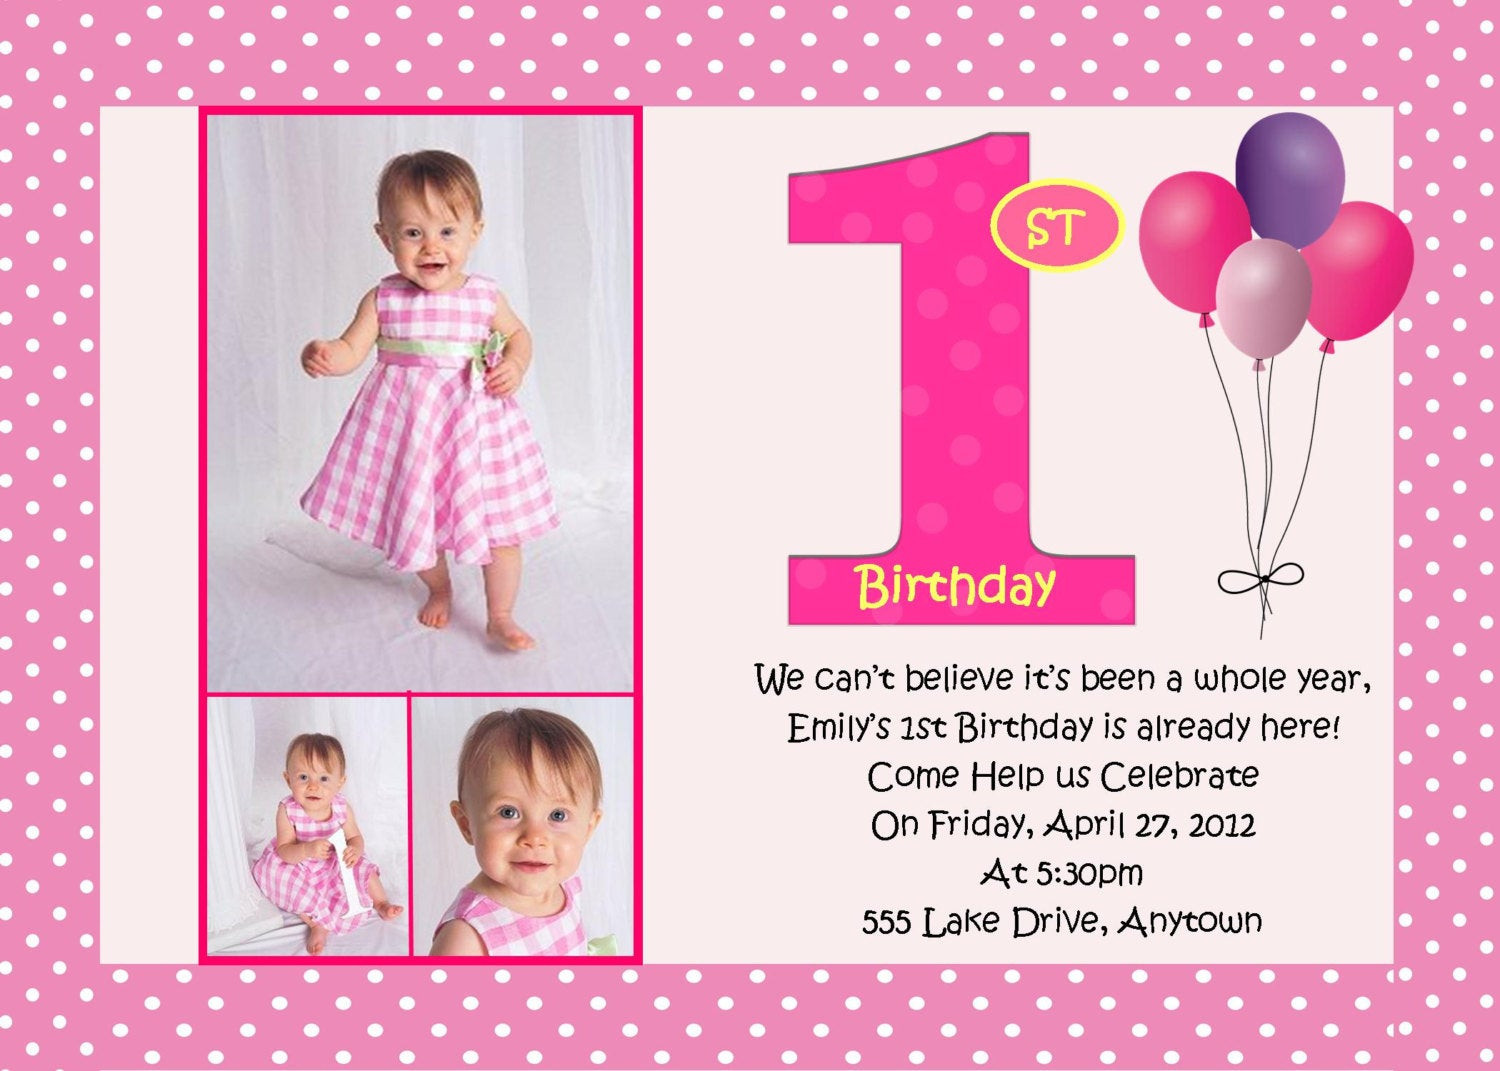 Best ideas about Design Birthday Invitations . Save or Pin First Birthday Pink Birthday Invitation 3 Designs to Choose Now.